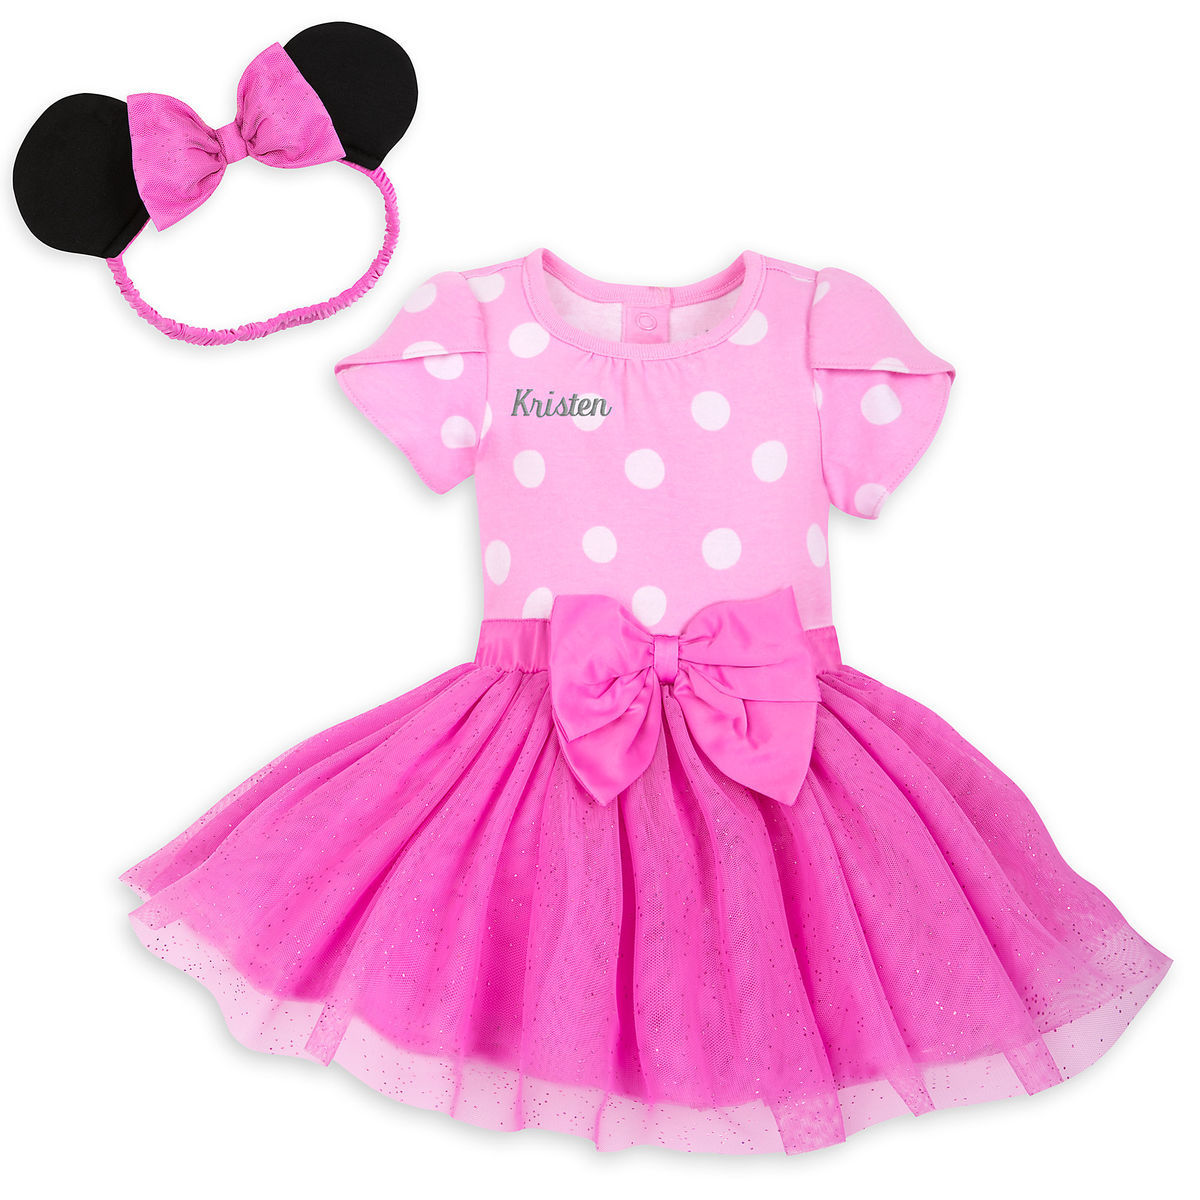 44b126b347be Minnie Mouse Costume Bodysuit for Baby - Pink - Personalizable ...